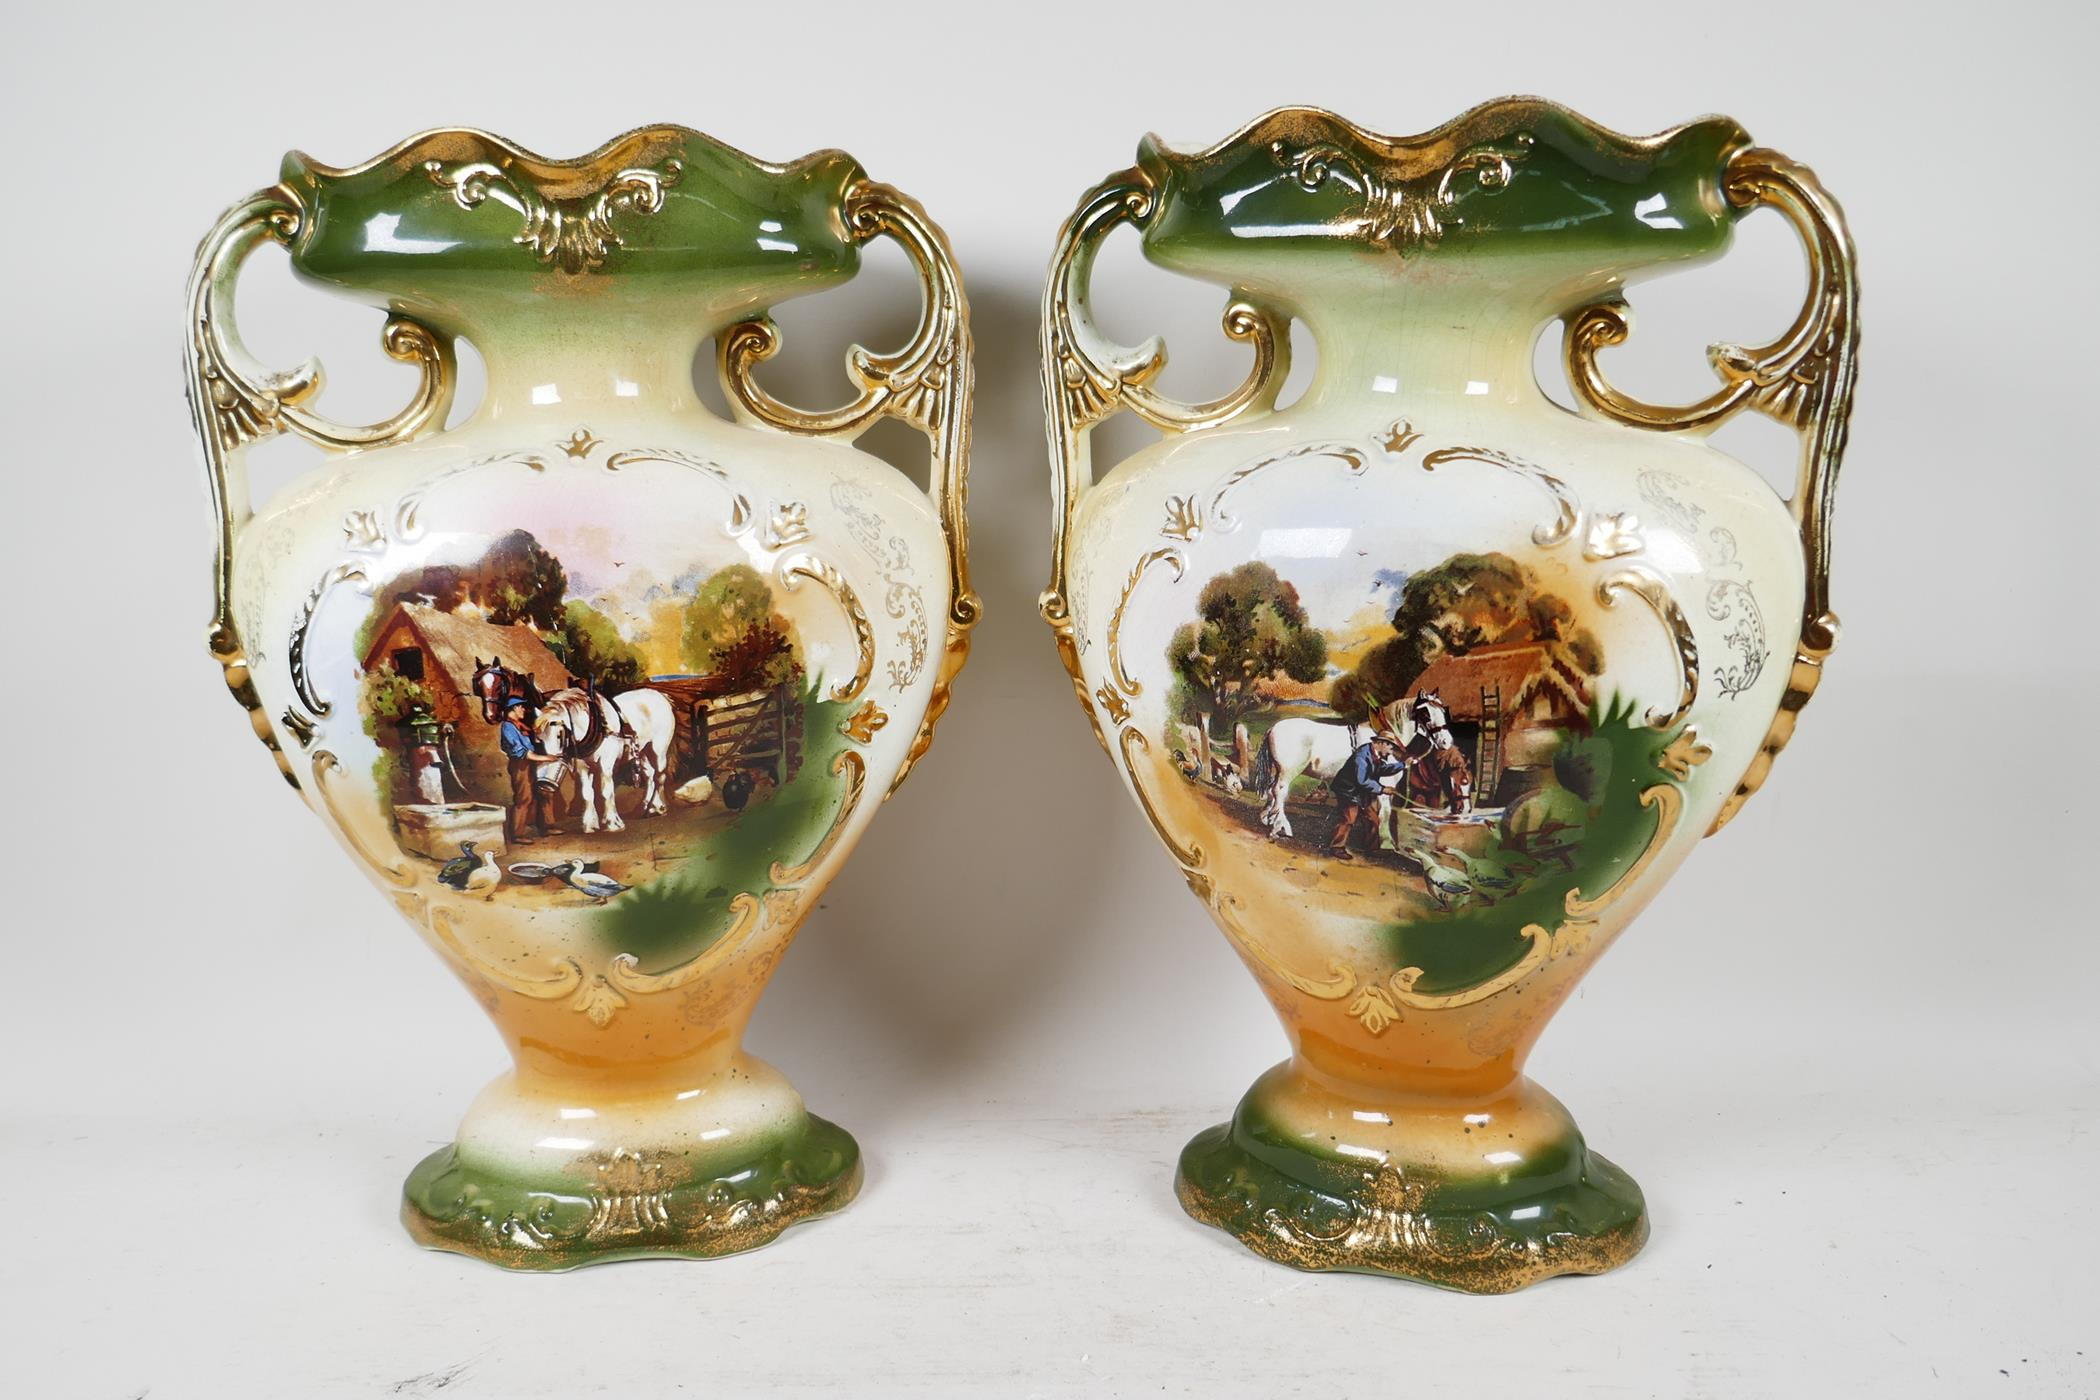 A pair of C19th two handled mantel vases transfer printed with scenes of working horses in a